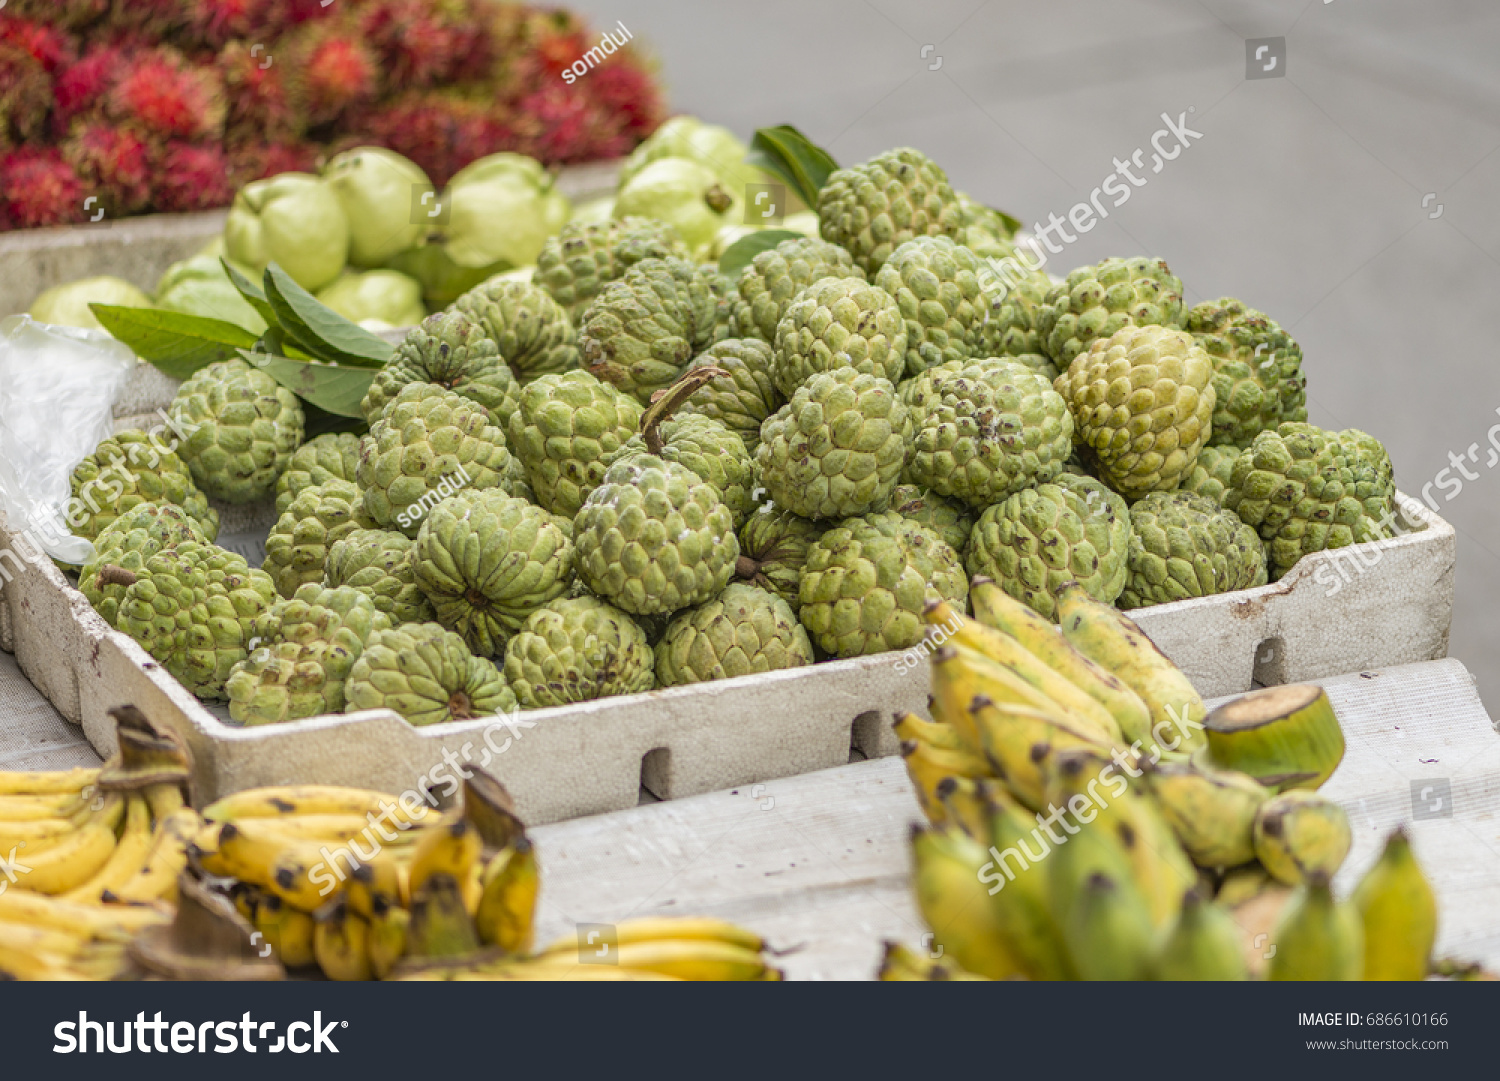 sugar apple many kind fruits sold stock photo (edit now) 686610166